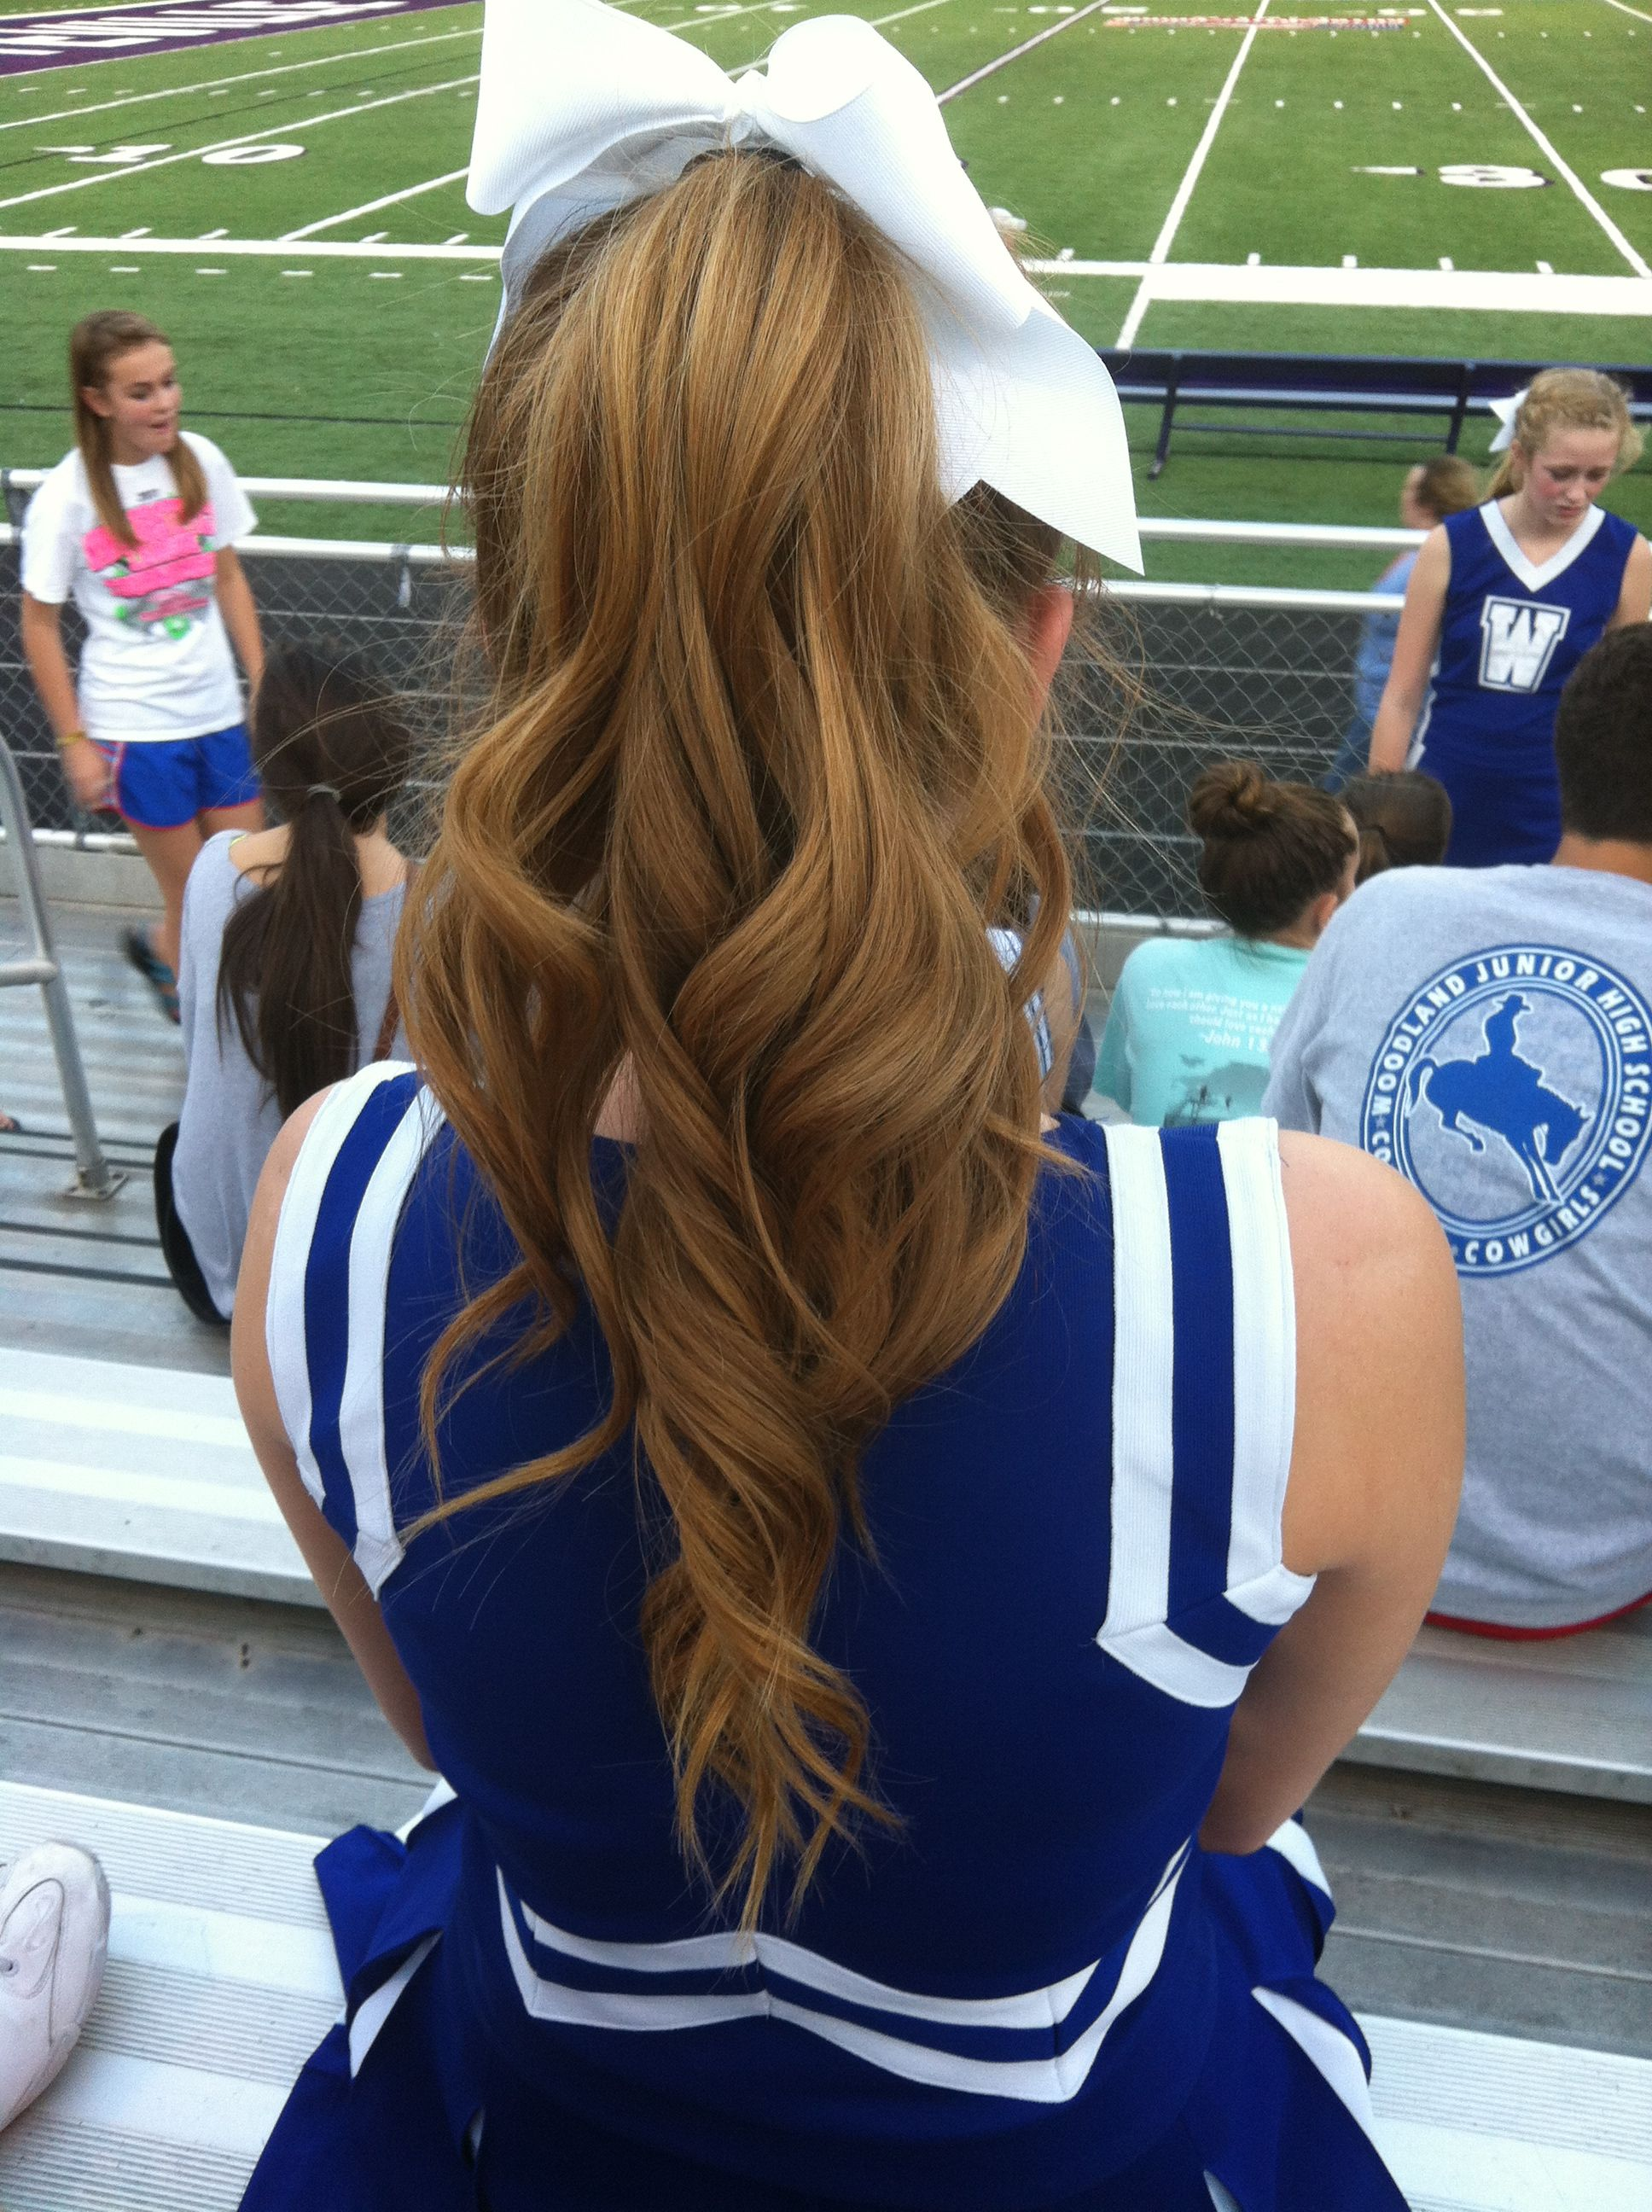 perfect hair for a football game!! haha it's meee!! | lovely